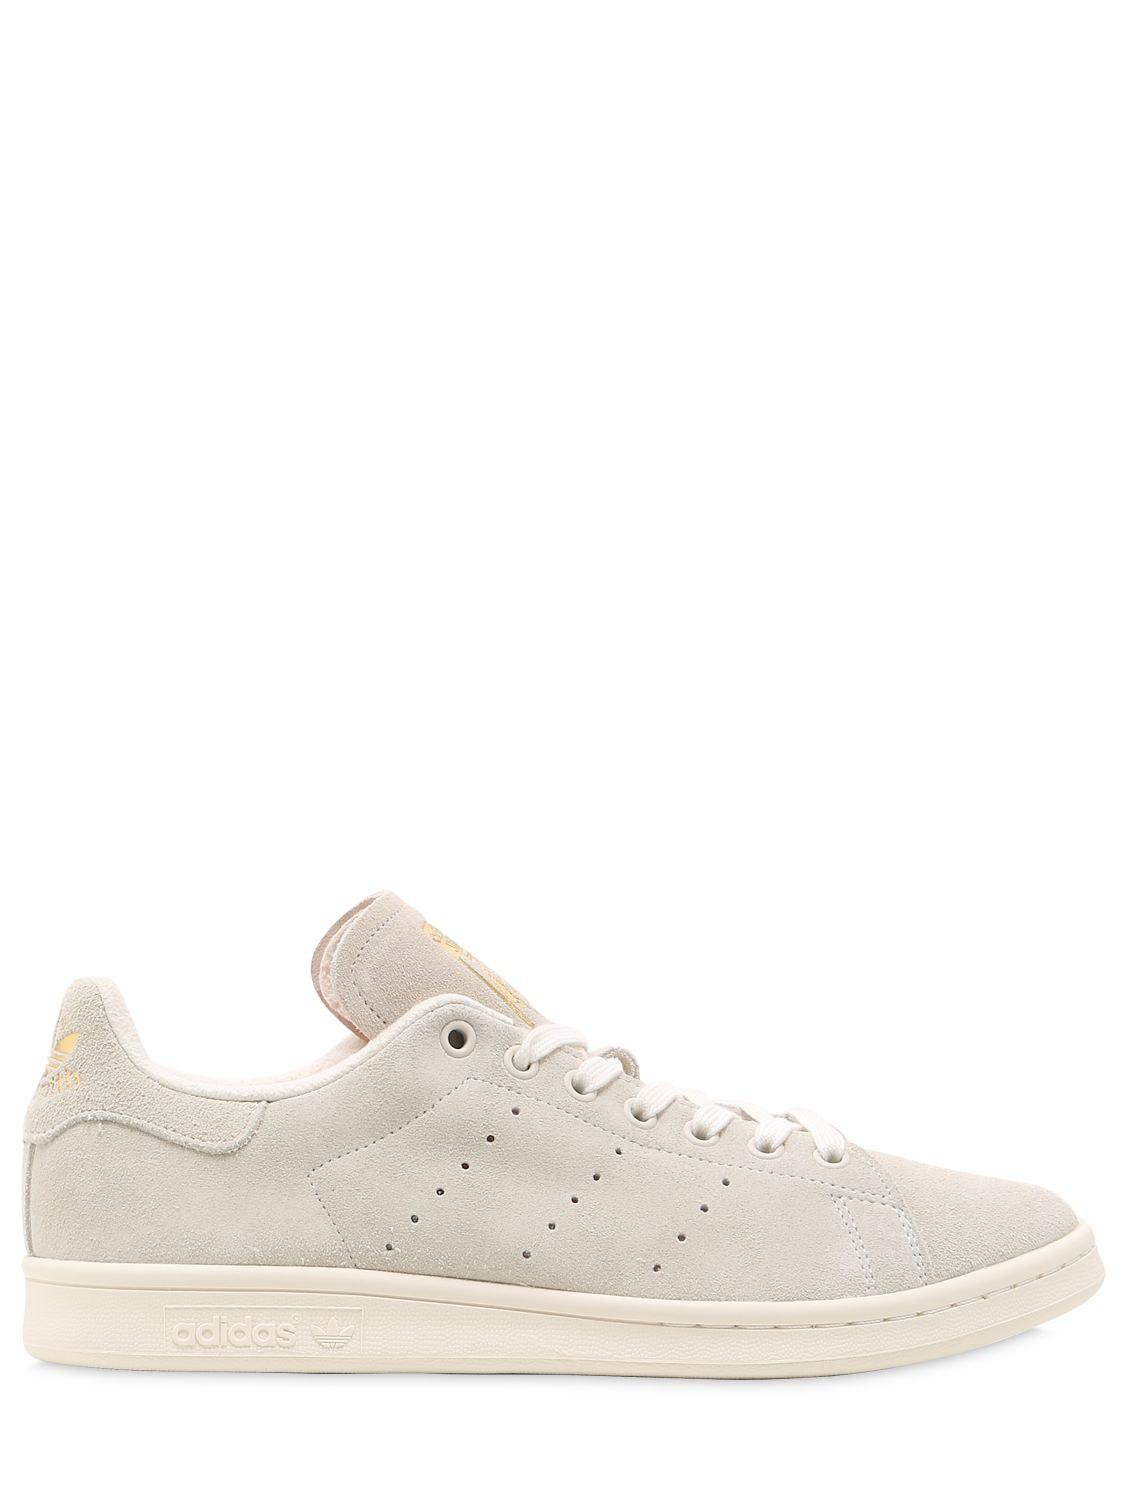 Lyst - adidas Originals Stan Smith Suede Sneakers in Natural for Men d3a407b6c888